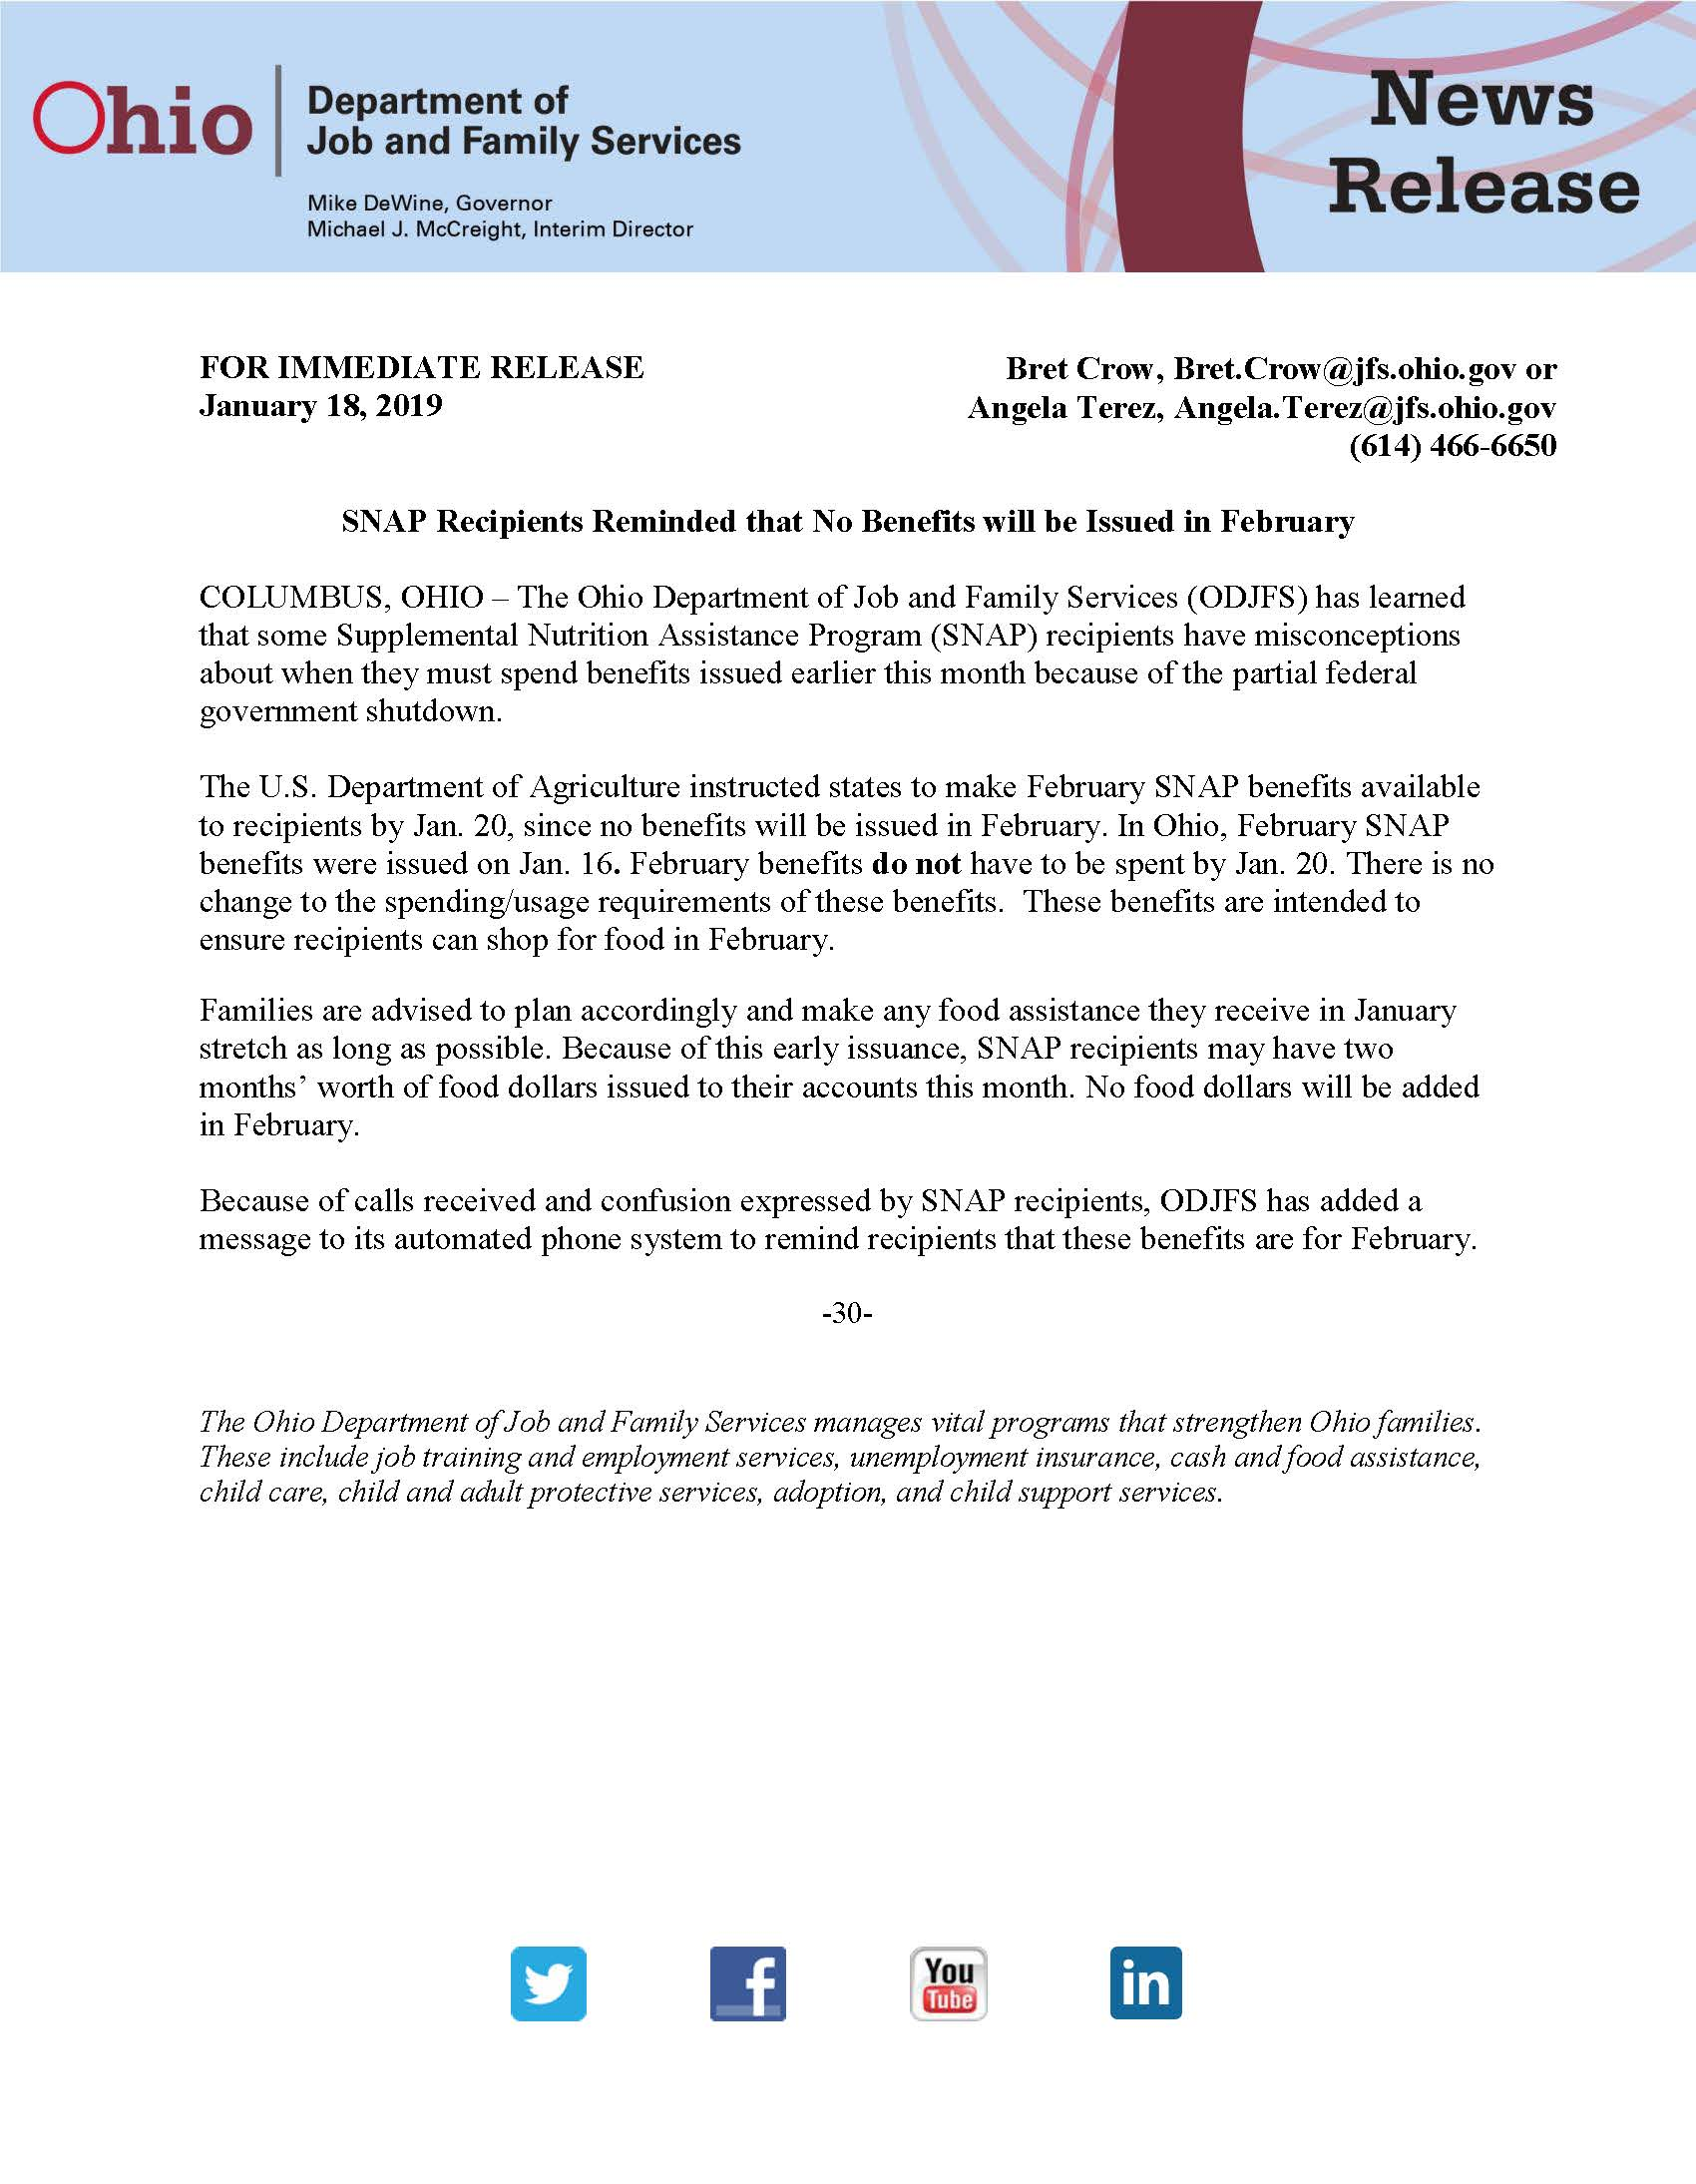 SNAP Benefits Reminder Press Release from Ohio Job and Family Services